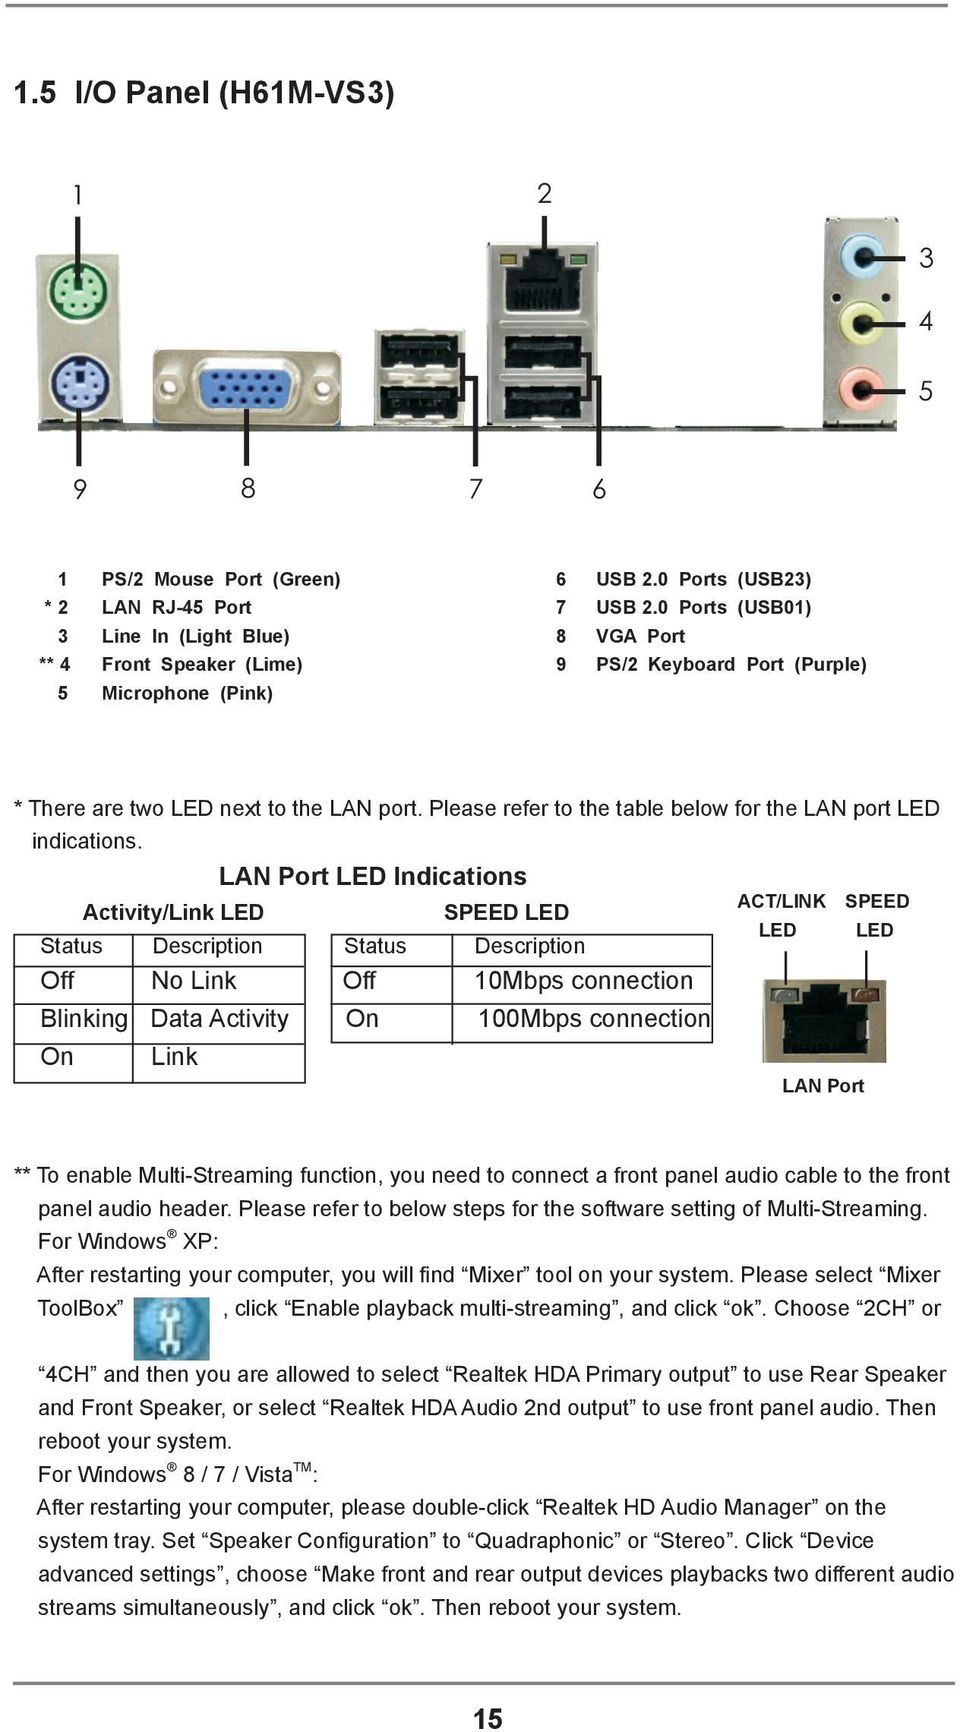 Please refer to the table below for the LAN port LED indications.